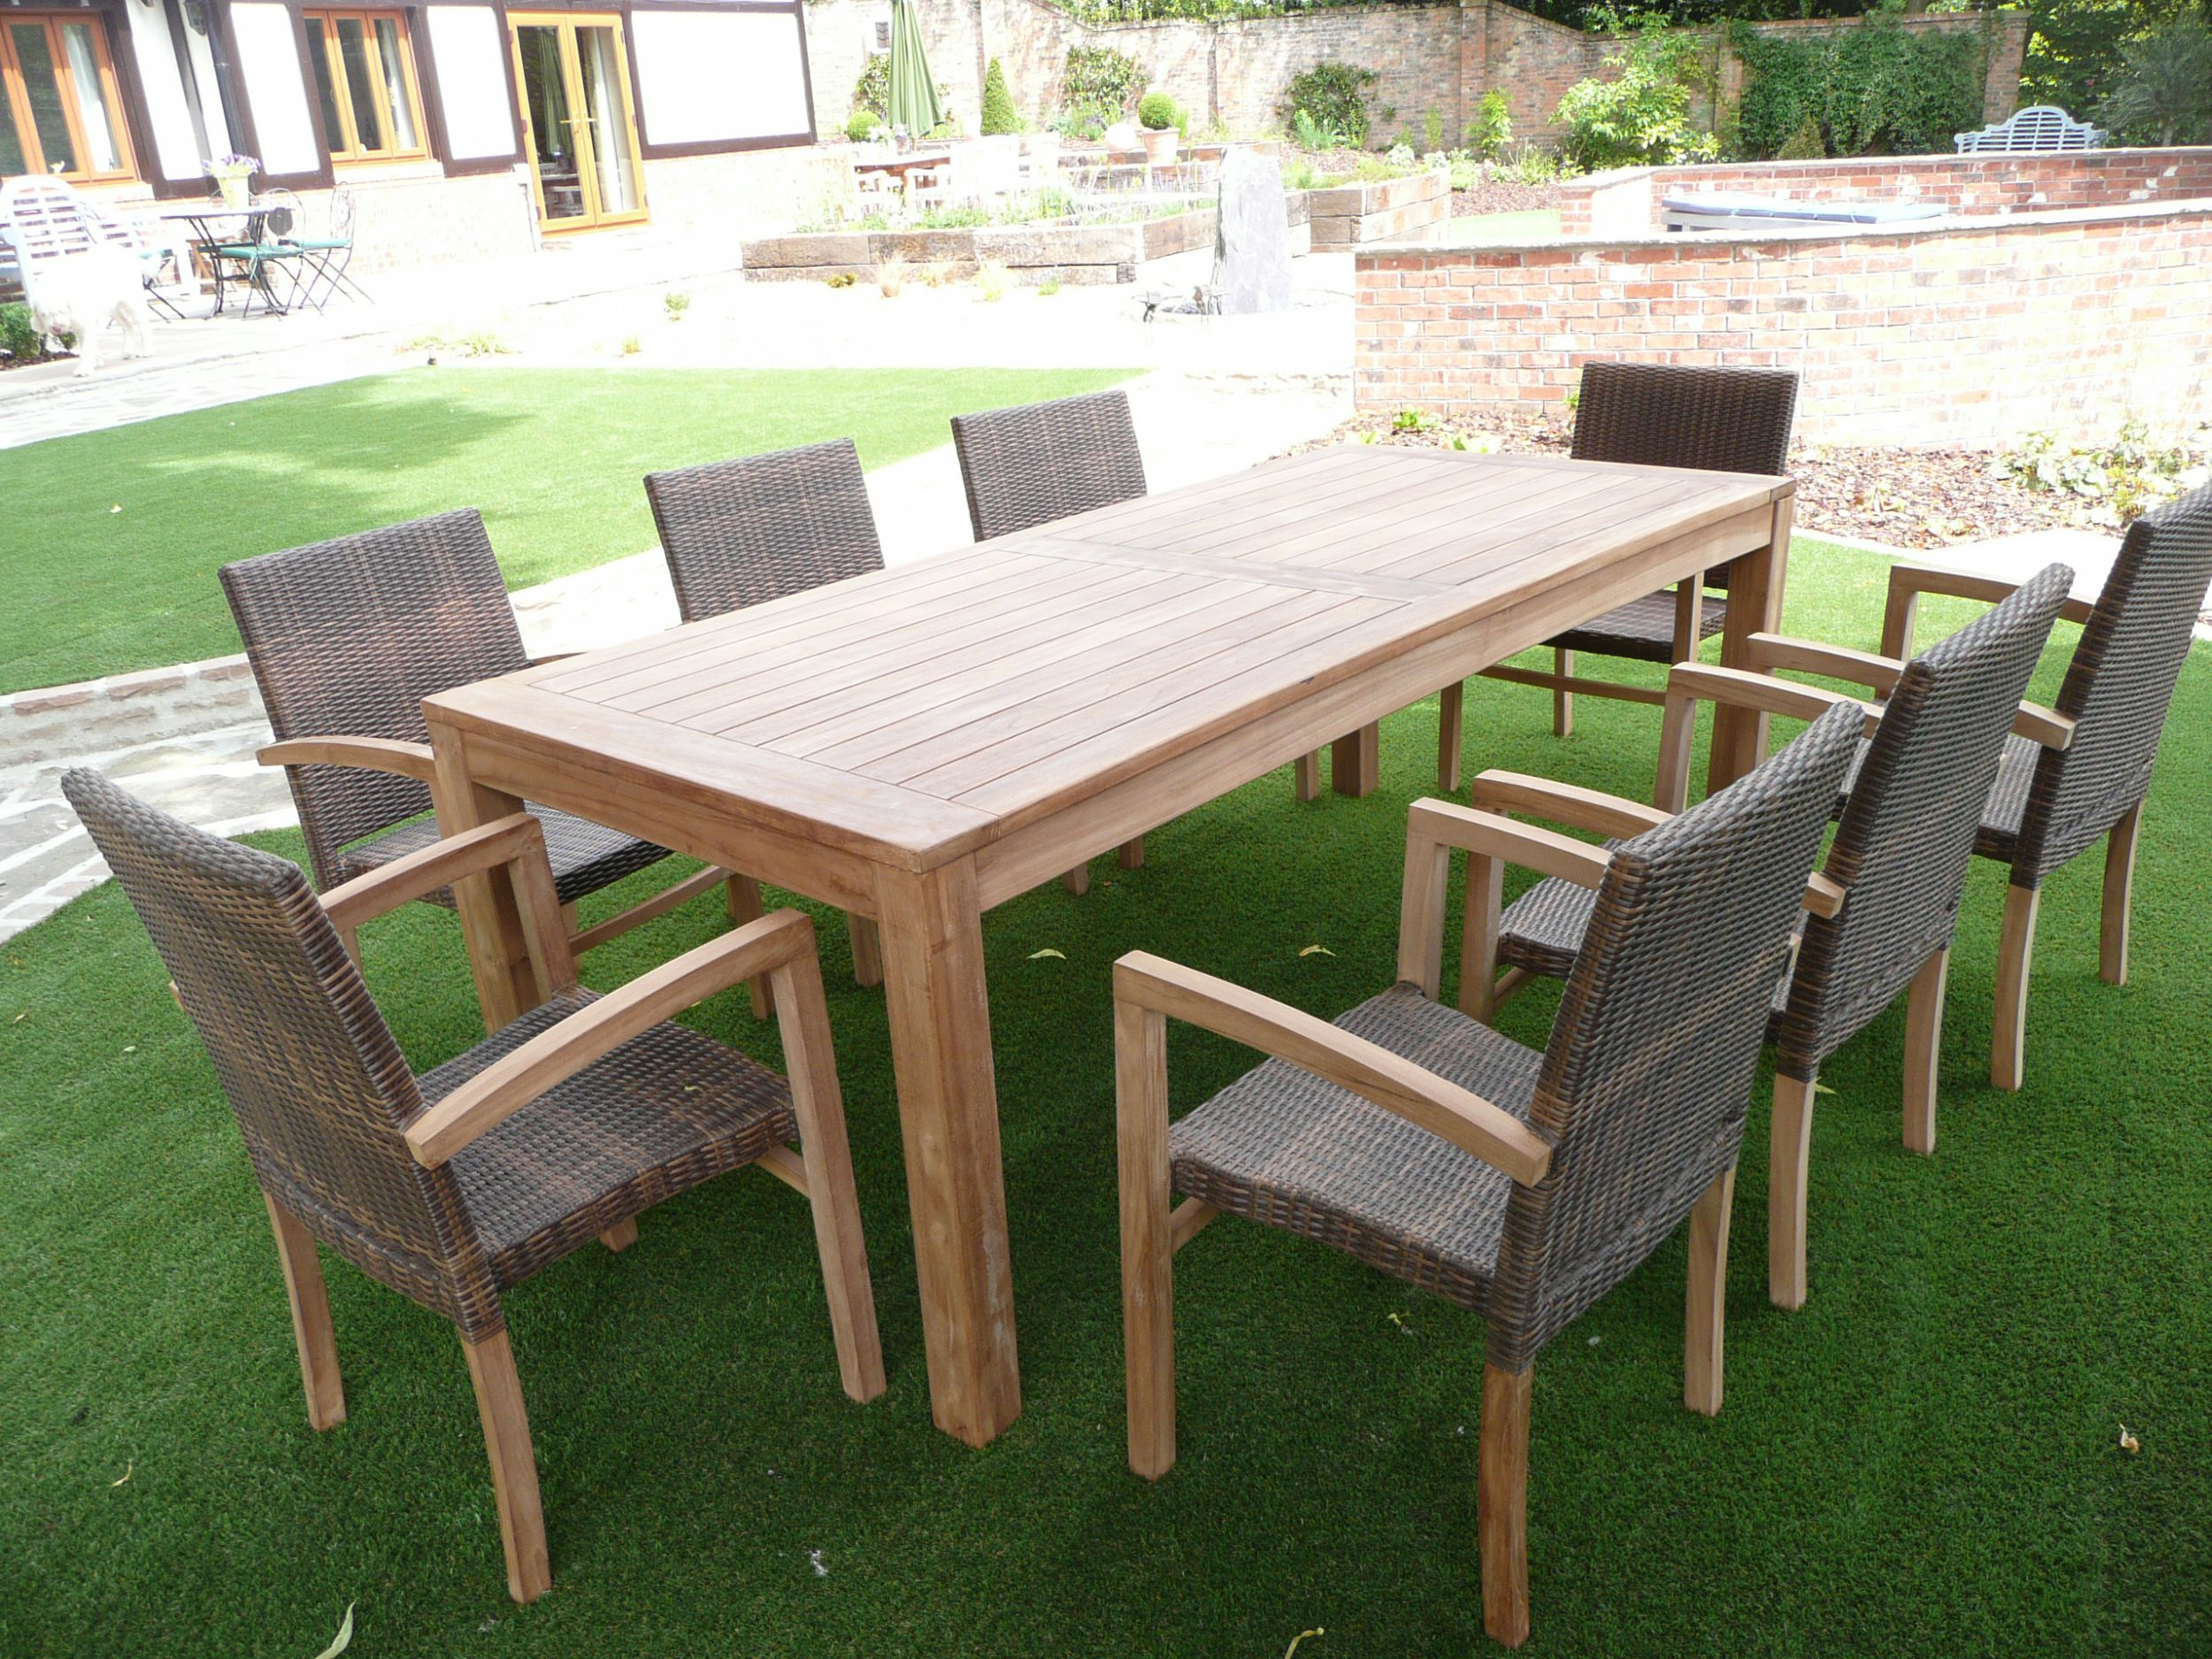 cannes 8 seater teak rattan garden furniture set - Garden Furniture 8 Seater